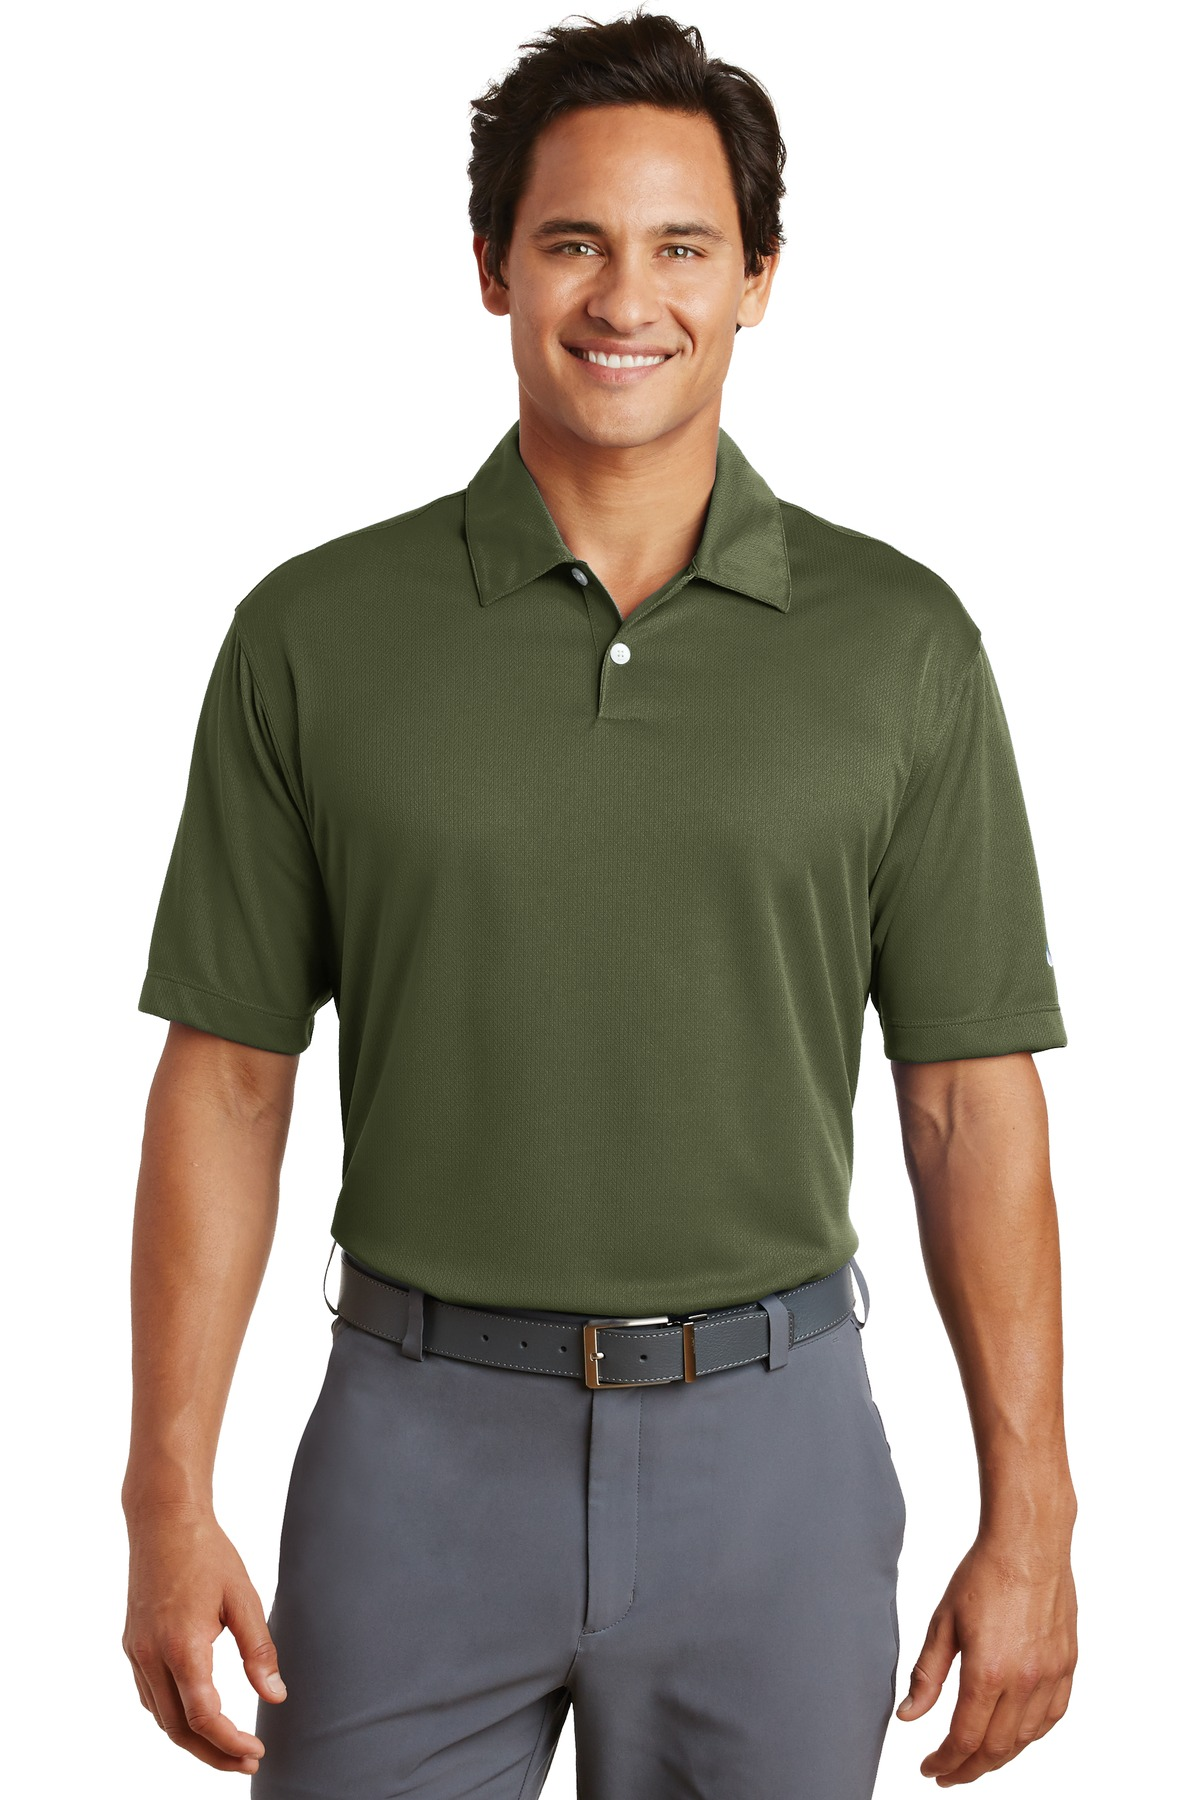 Nike Dri-FIT Pebble Texture Polo. 373749 - Urban Haze